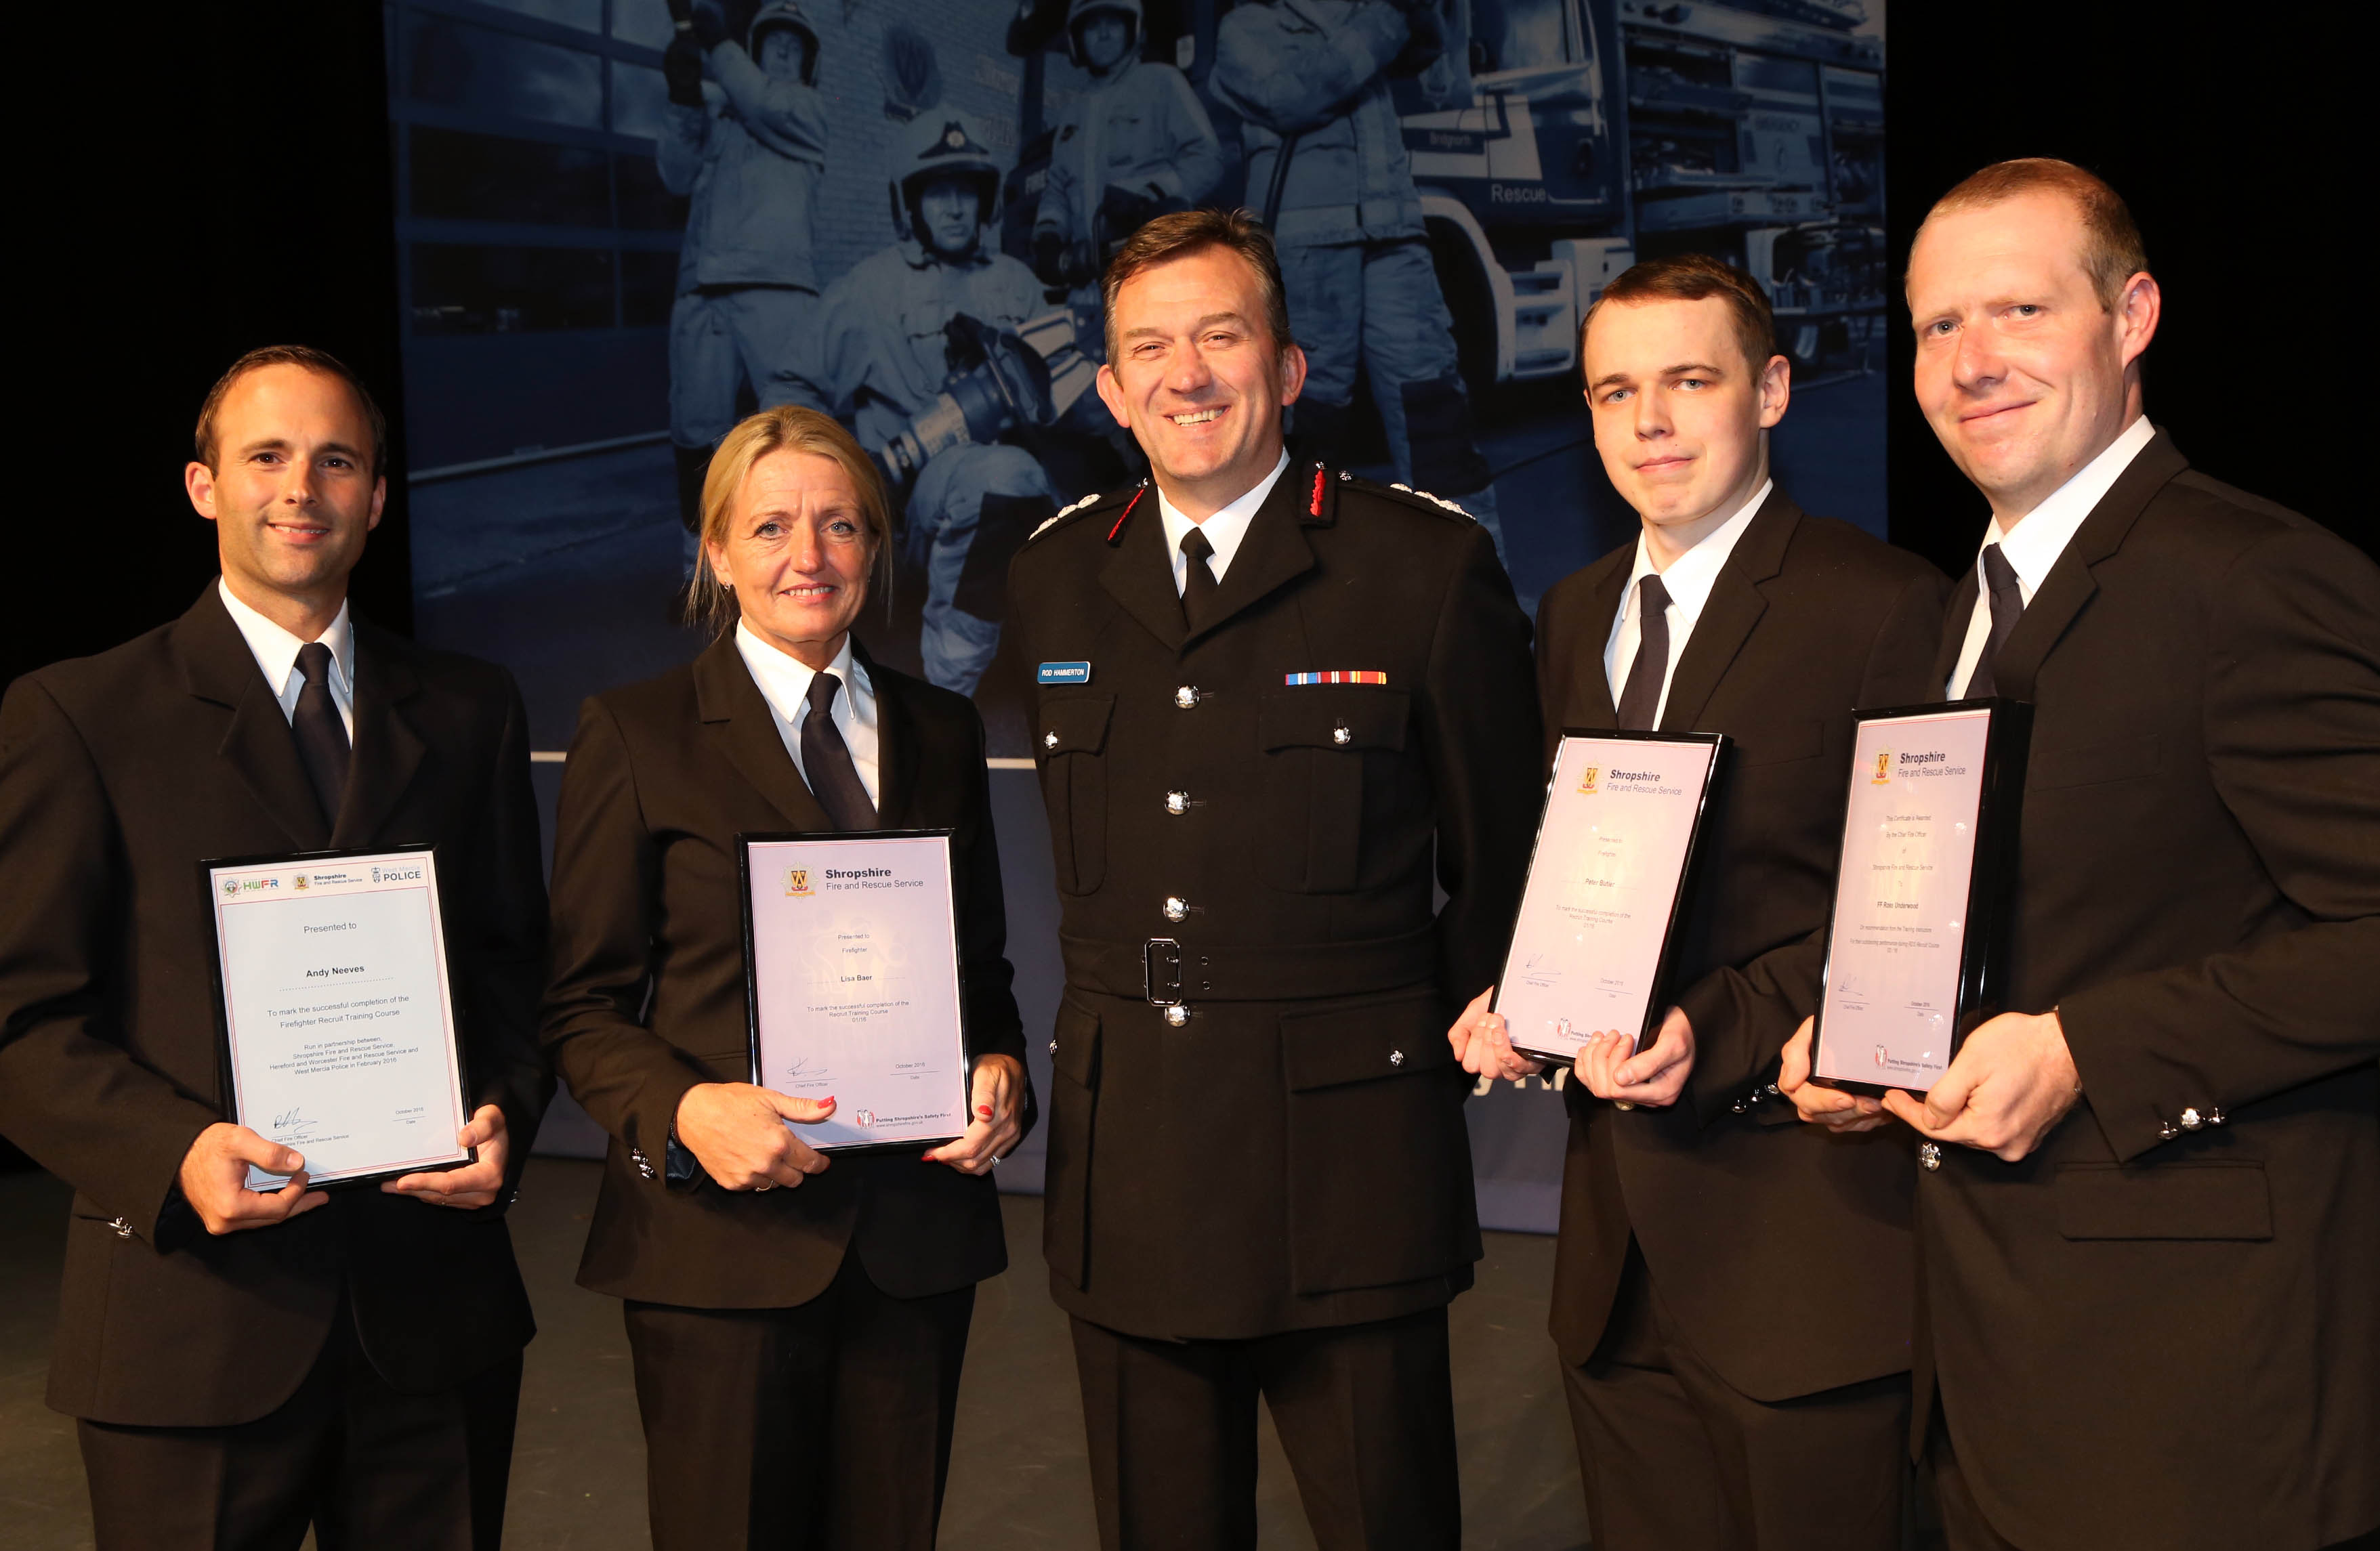 Also featured were firefighters Andy Neeves, a Police CSO from Oswestry; Lisa Baer, from Prees, who joined when Prees firefighters helped her daughter in a road crash; Tesco fishmonger Peter Butler, from Ellesmere, and Hodnet Hall gardener Ross Underwood who won the instructors award for his course.